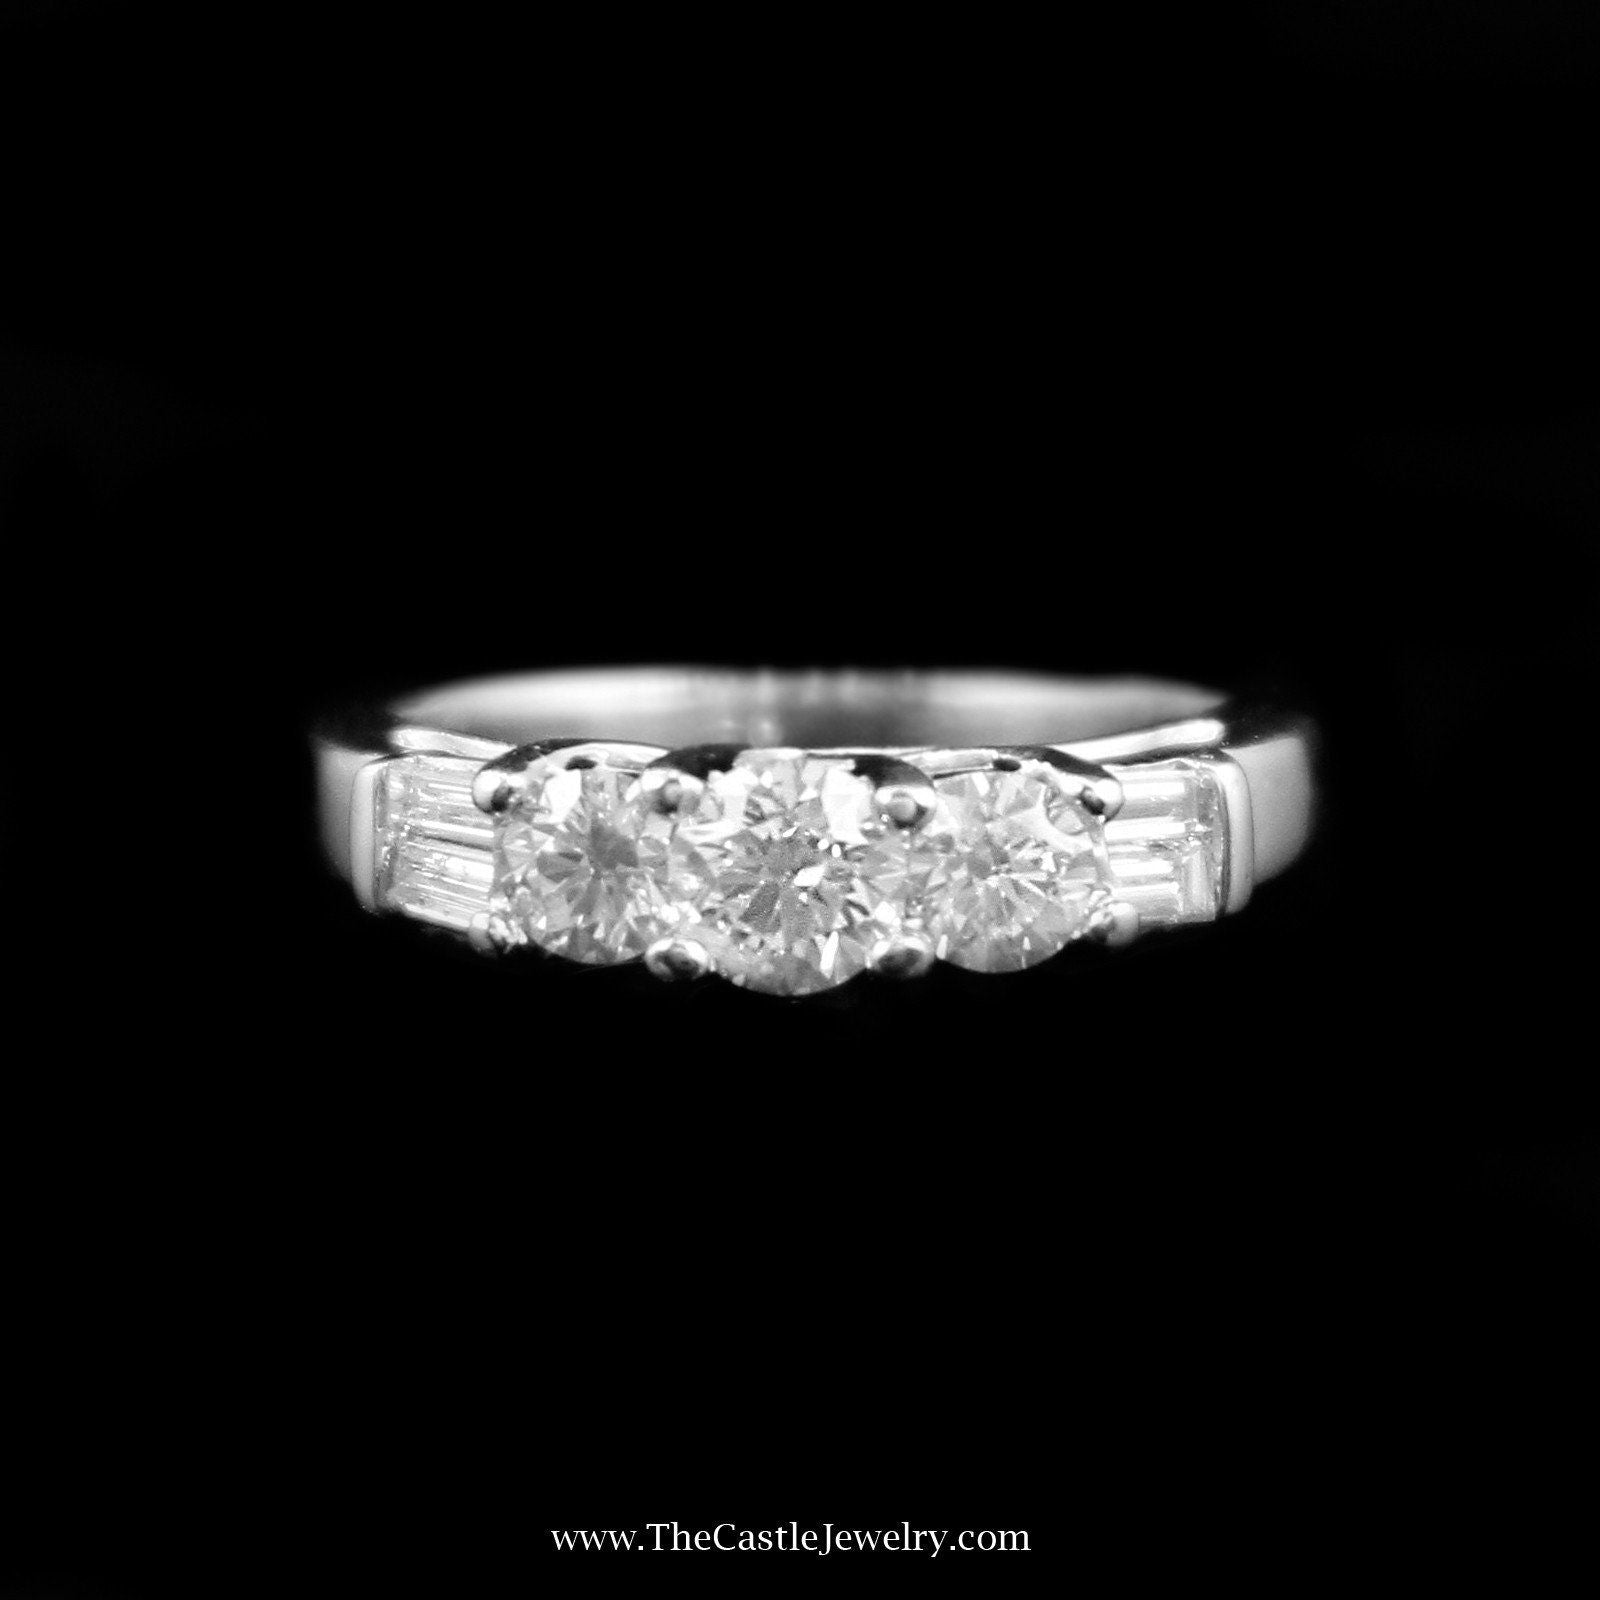 Stunning 1cttw DeBeers Style Diamond Ring w/ Baguette Sides in White Gold